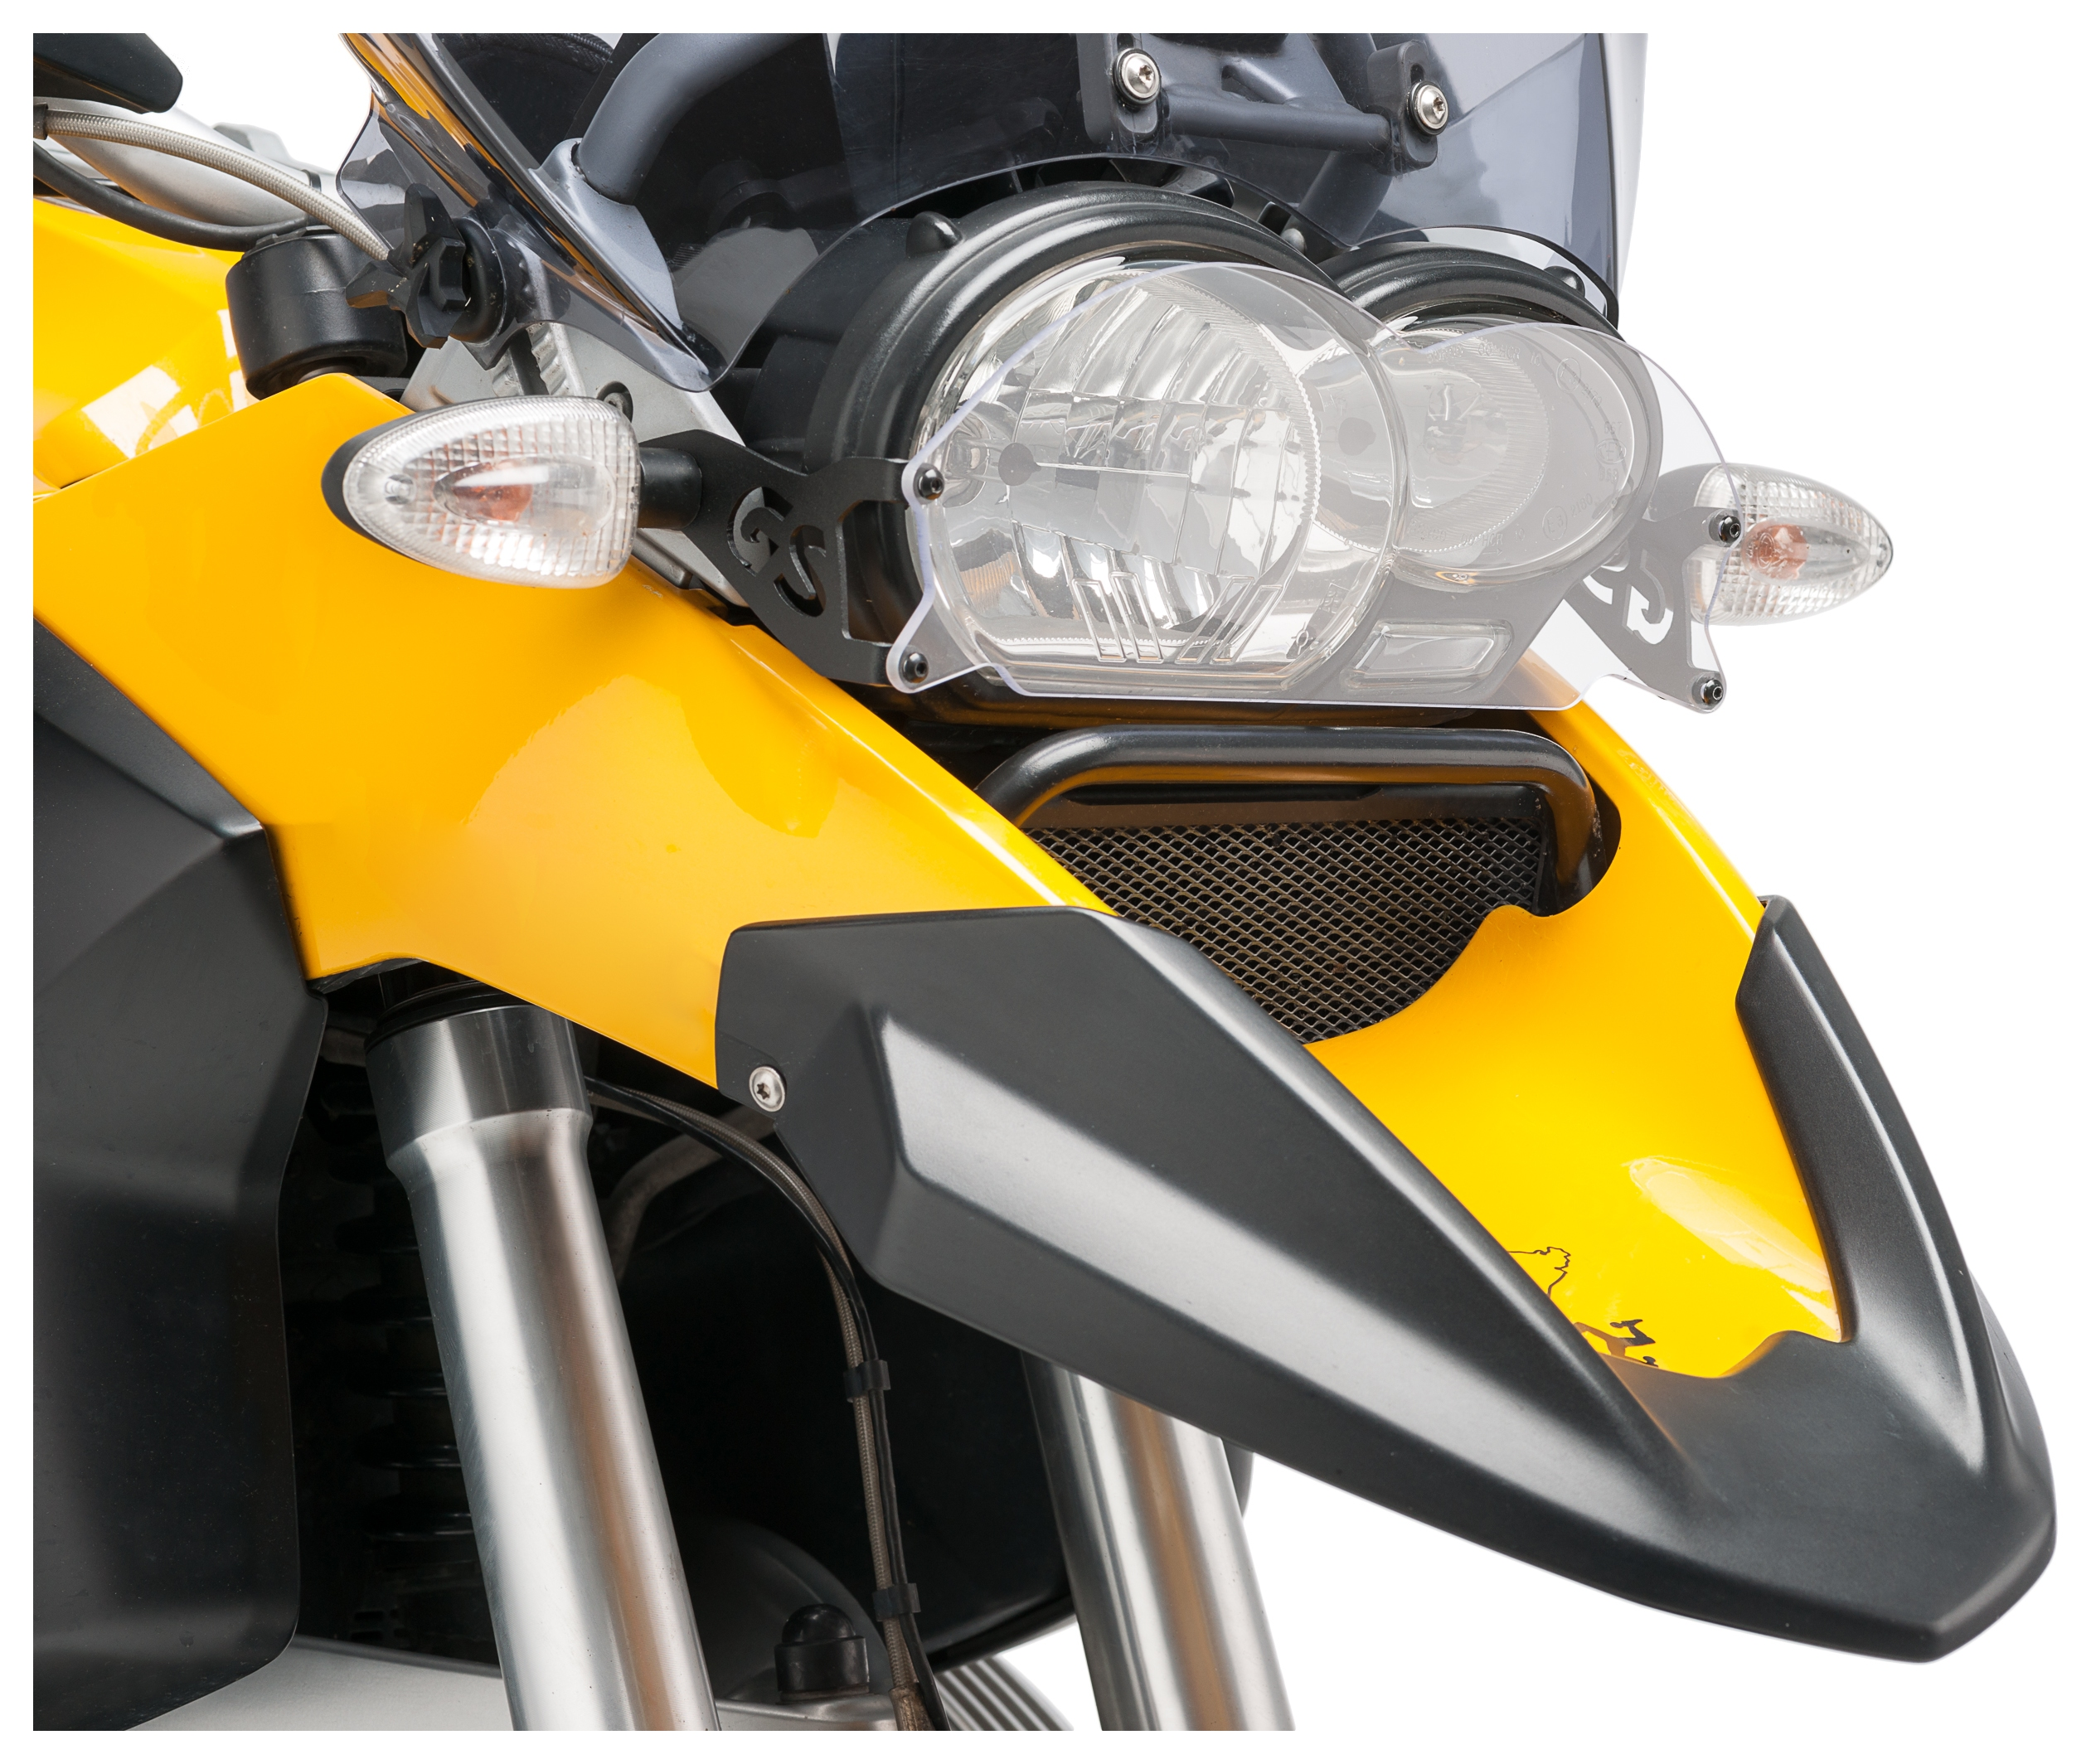 Puig Headlight Protector Bmw R1200gs Adventure 5 4